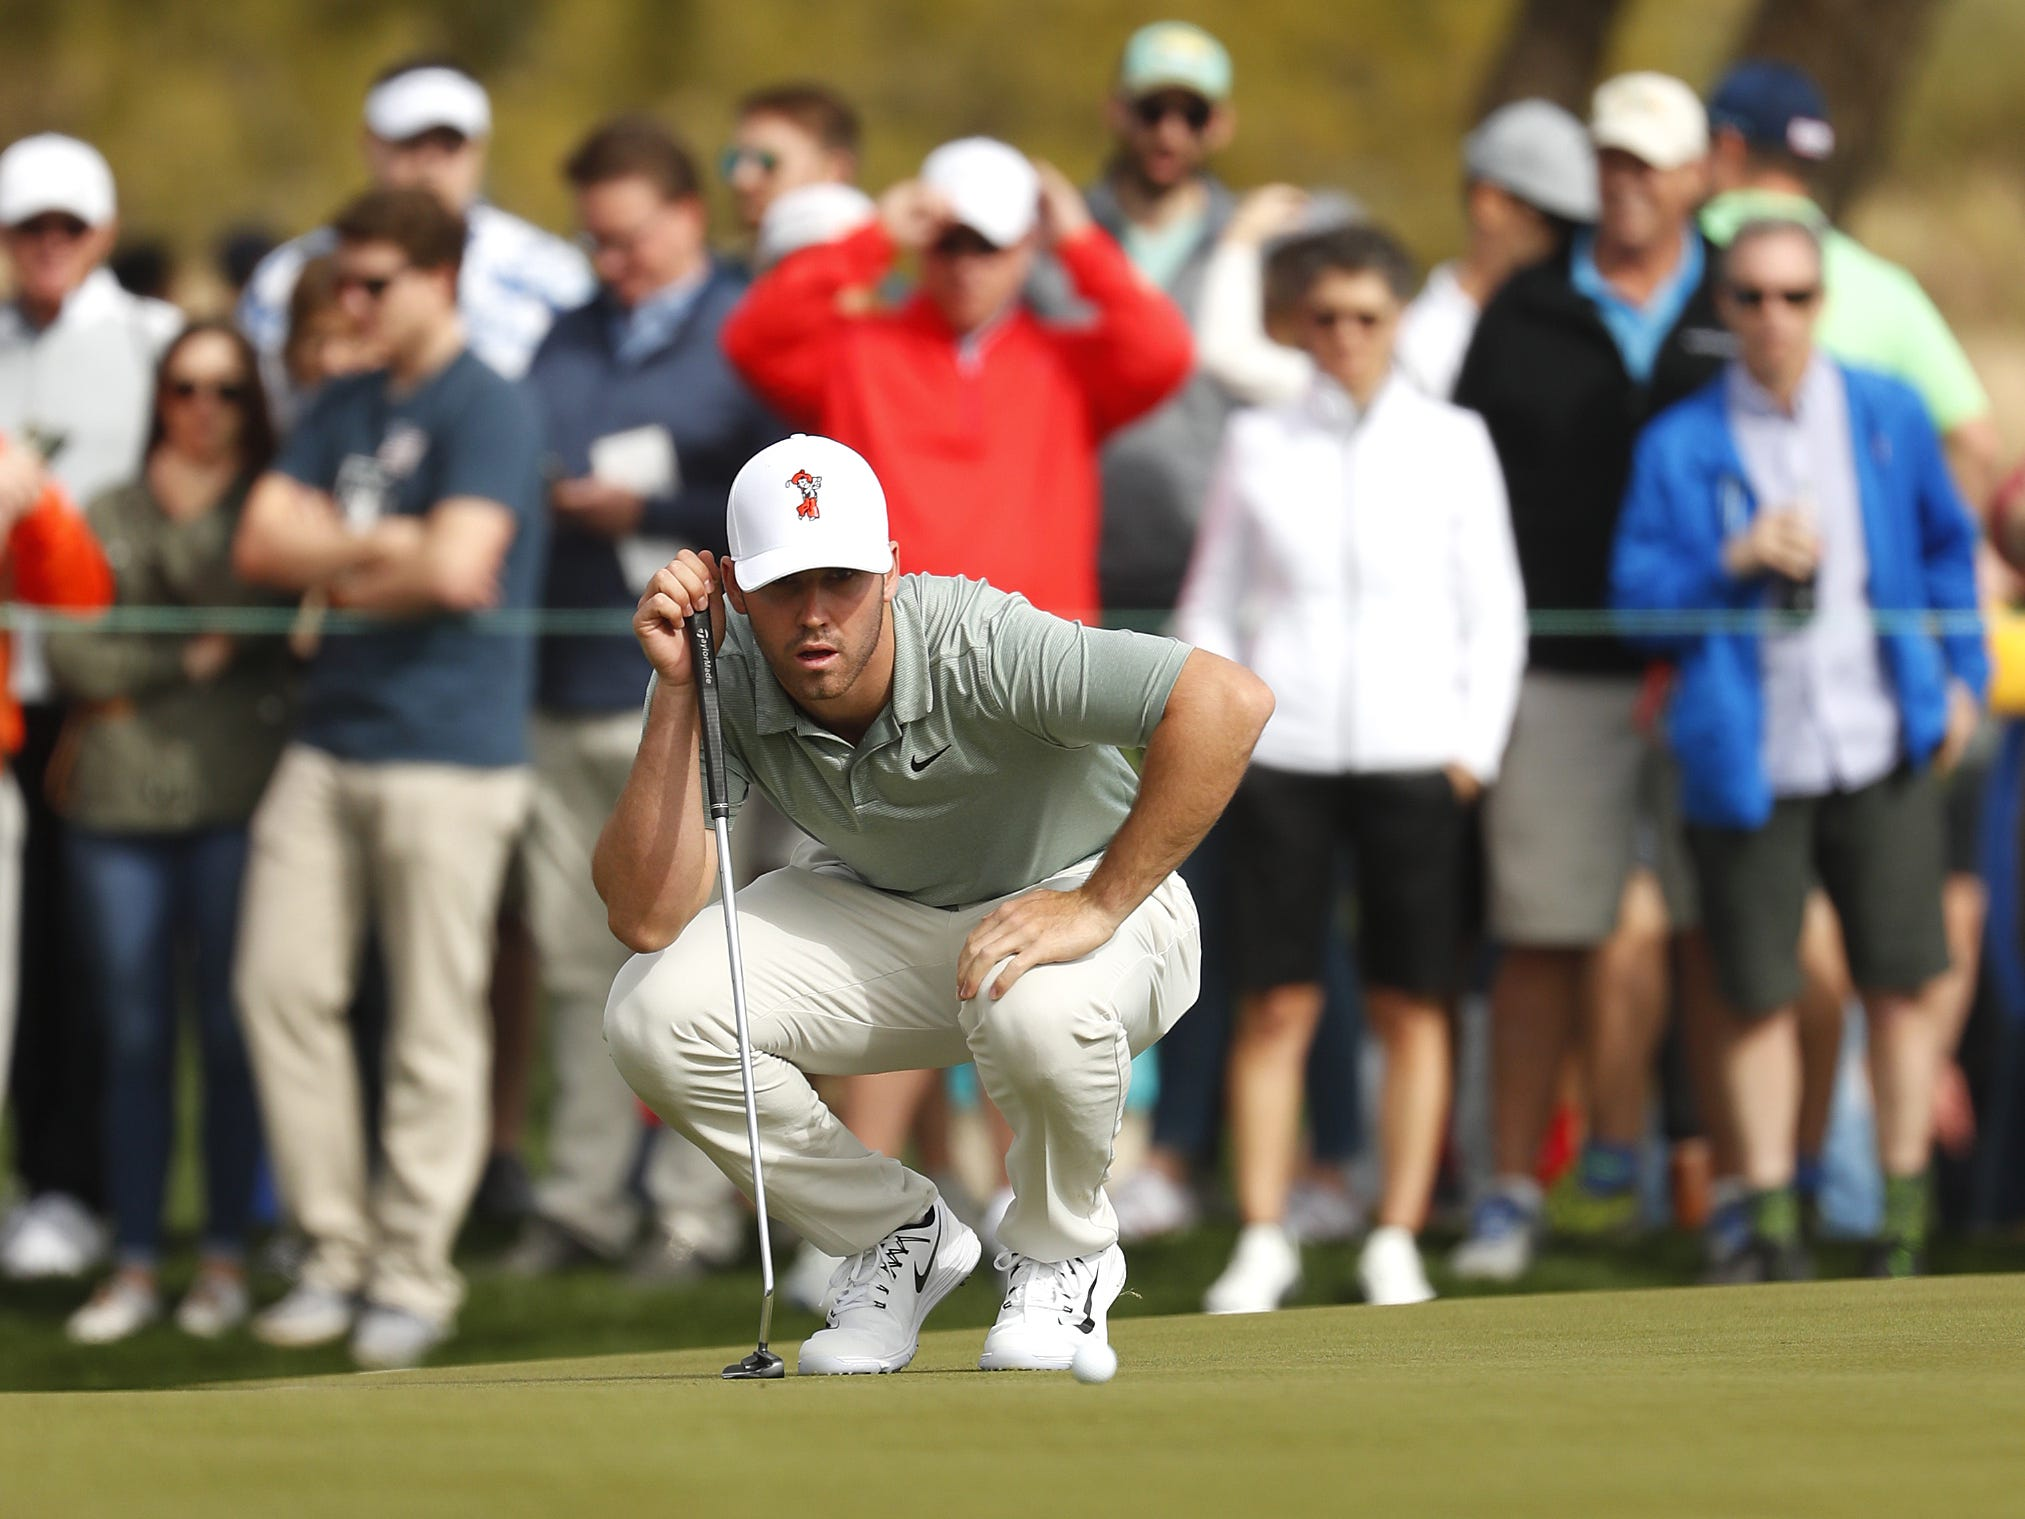 Matthew Wolff lines up a putt on the 9th green during the third round of the Waste Management Phoenix Open at TPC Scottsdale in Scottsdale, Ariz. on February 2, 2019.